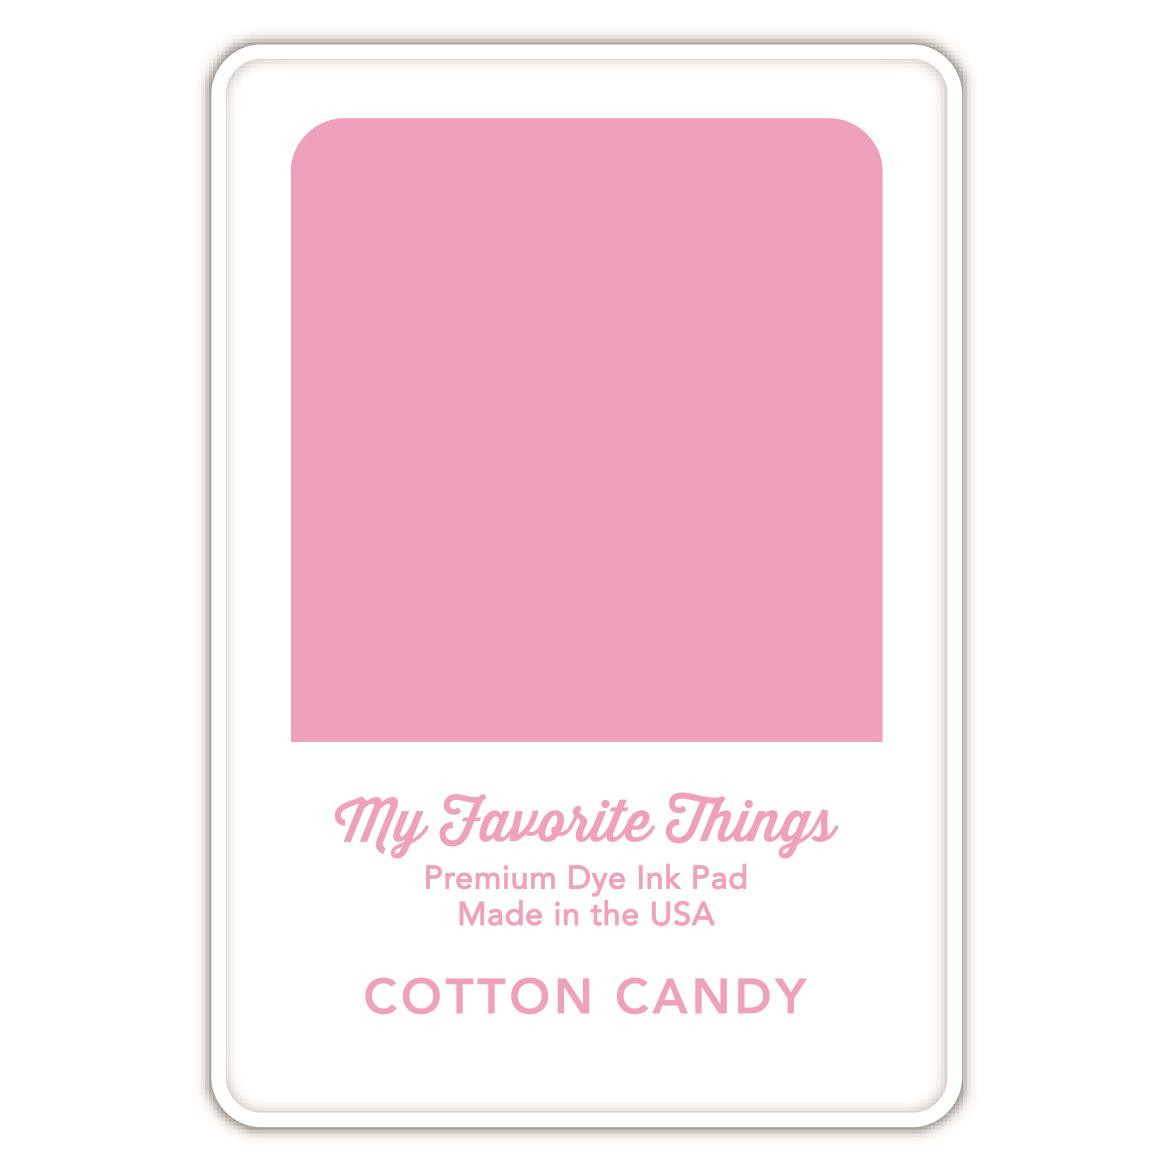 Cotton Candy, My Favorite Things Premium Dye Ink Pad -